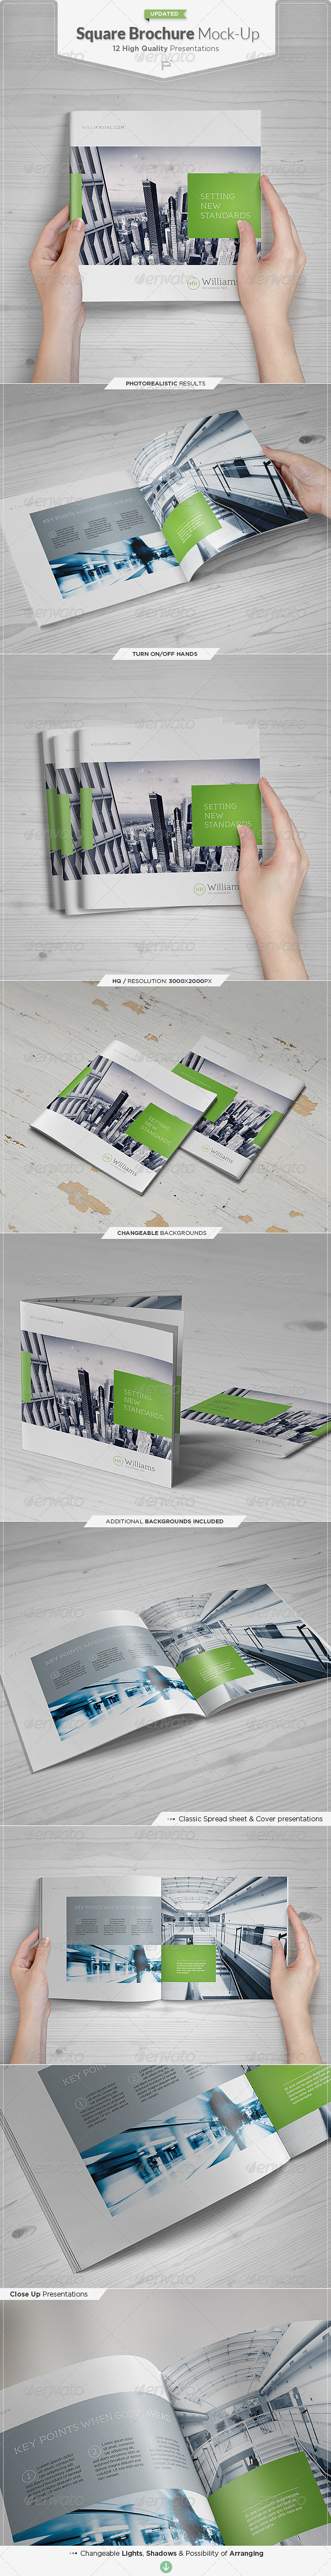 Square Brochure / Catalog Mock-Up Set - Brochures Print